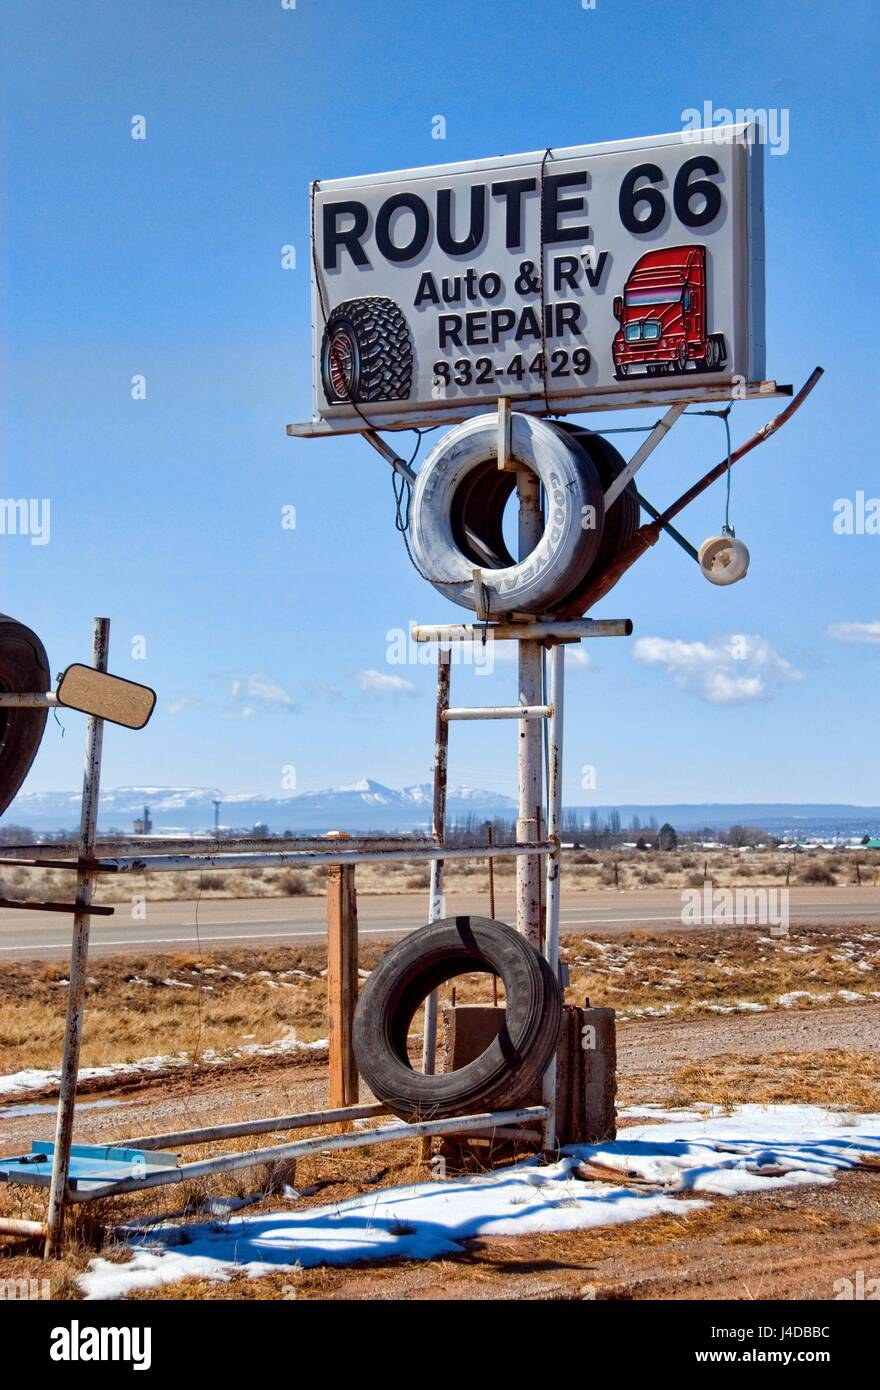 route 66 auto & rv repair stock photo: 140435888 - alamy